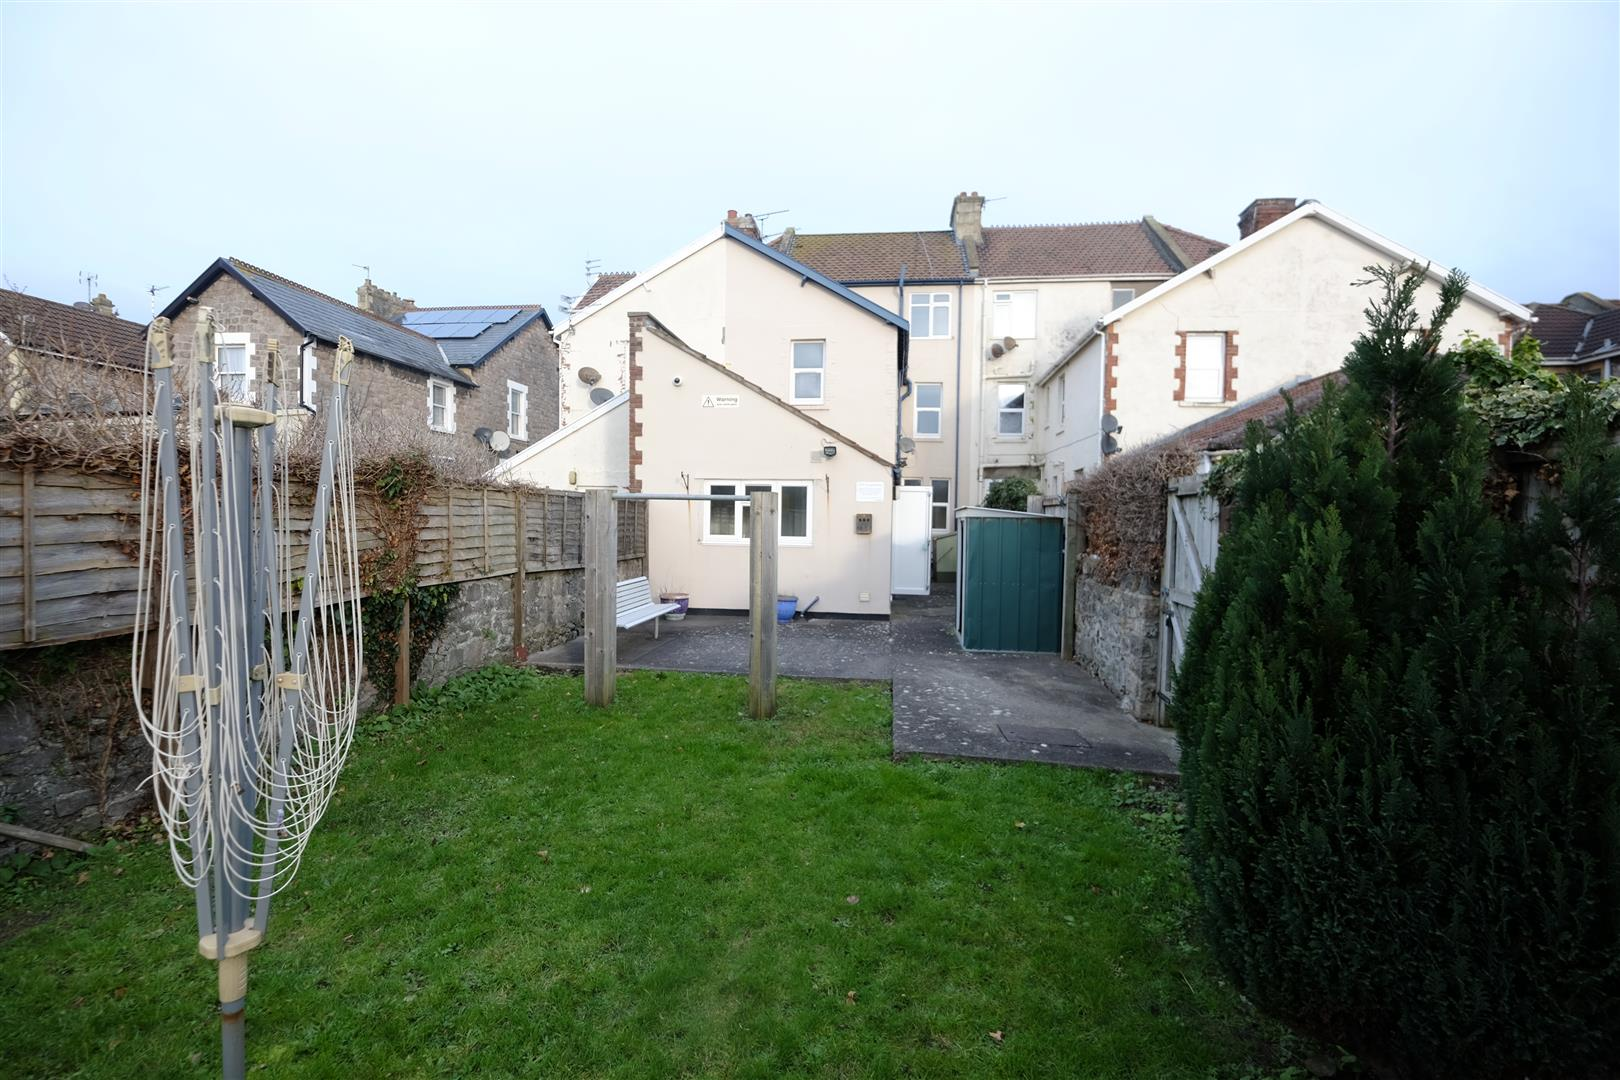 Images for 7 BED PERIOD PROPERTY - WSM EAID:hollismoapi BID:11